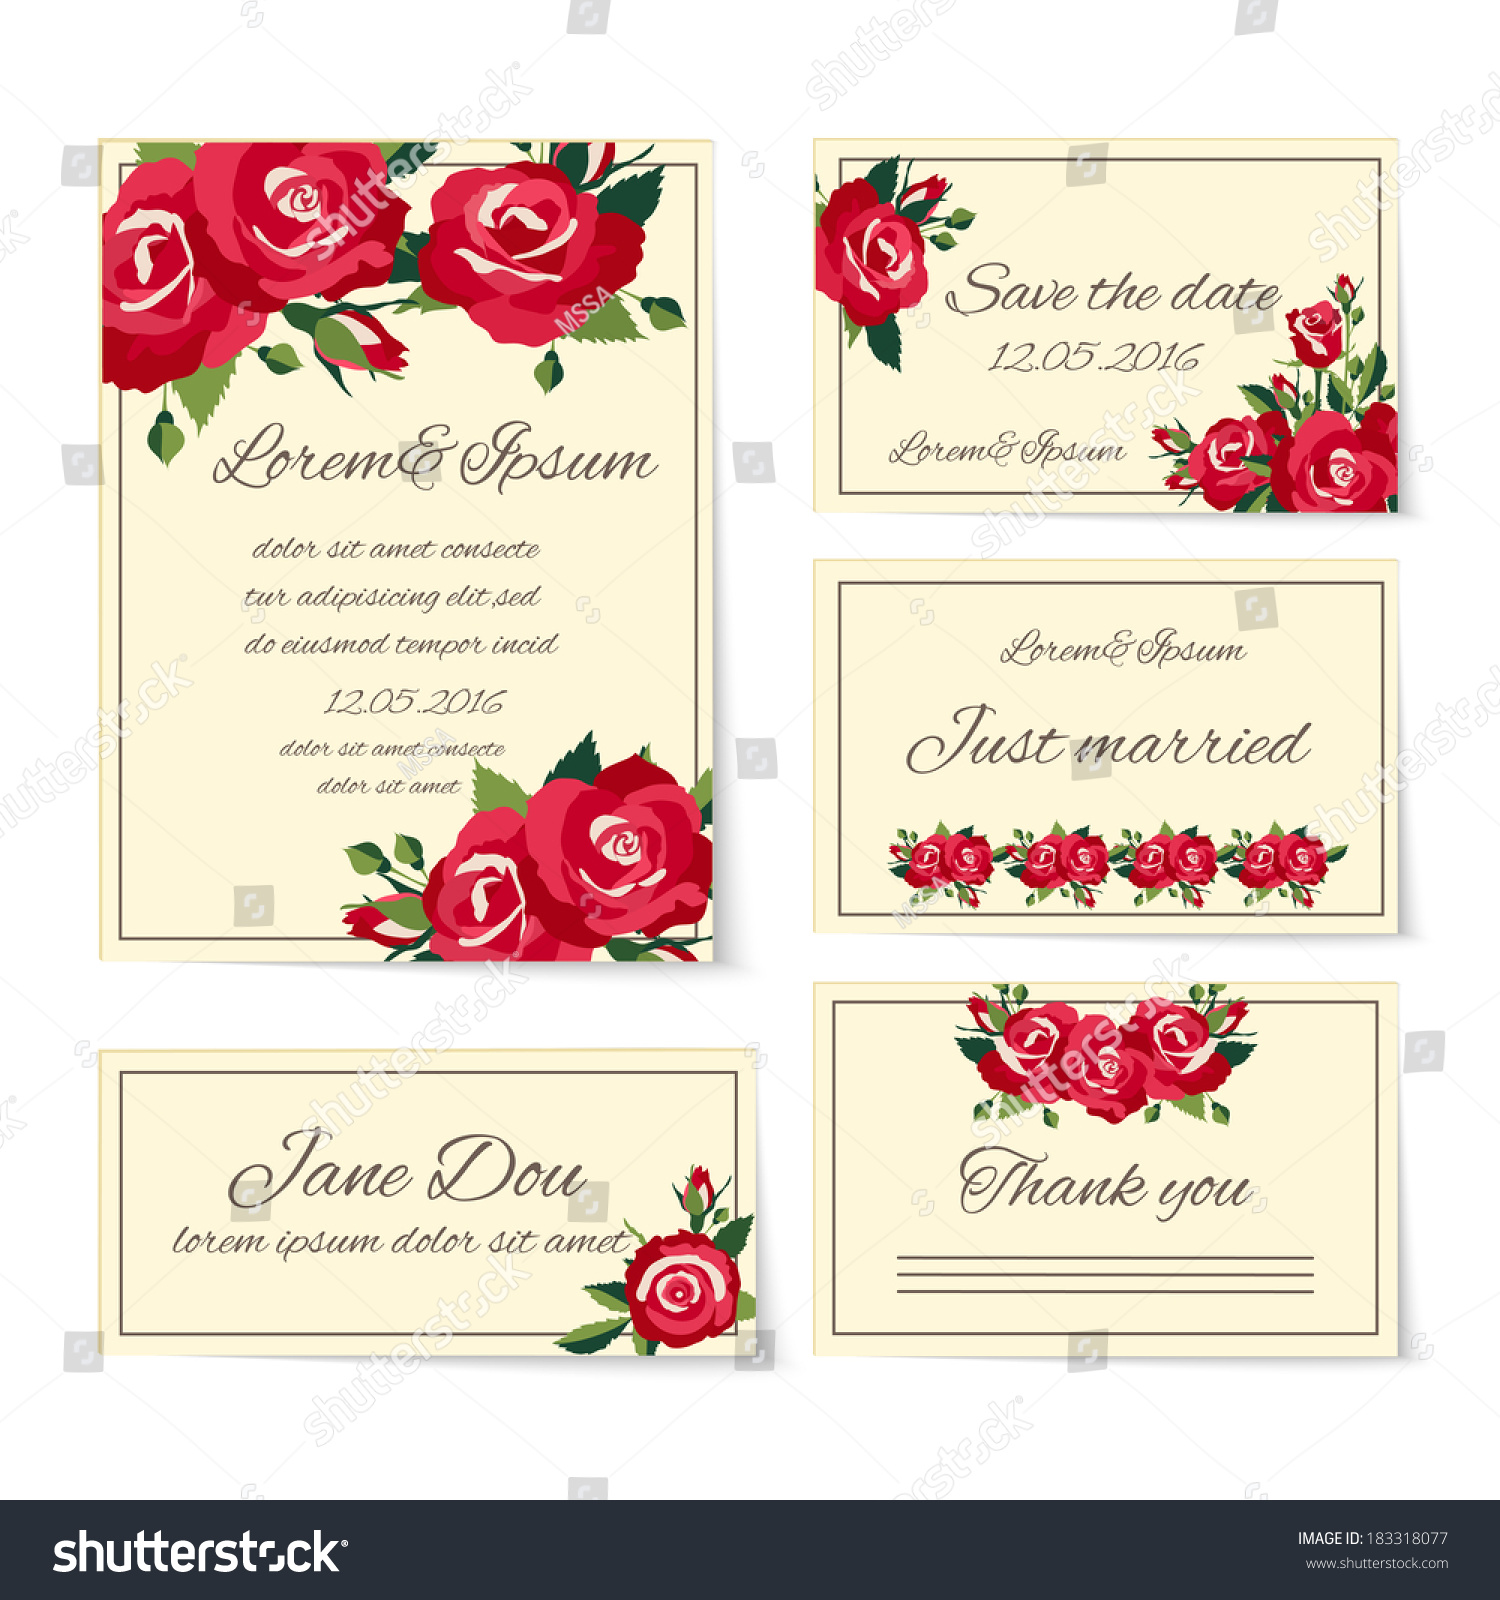 Complete Set Wedding Card Templates Covering Stock Vector (Royalty ...